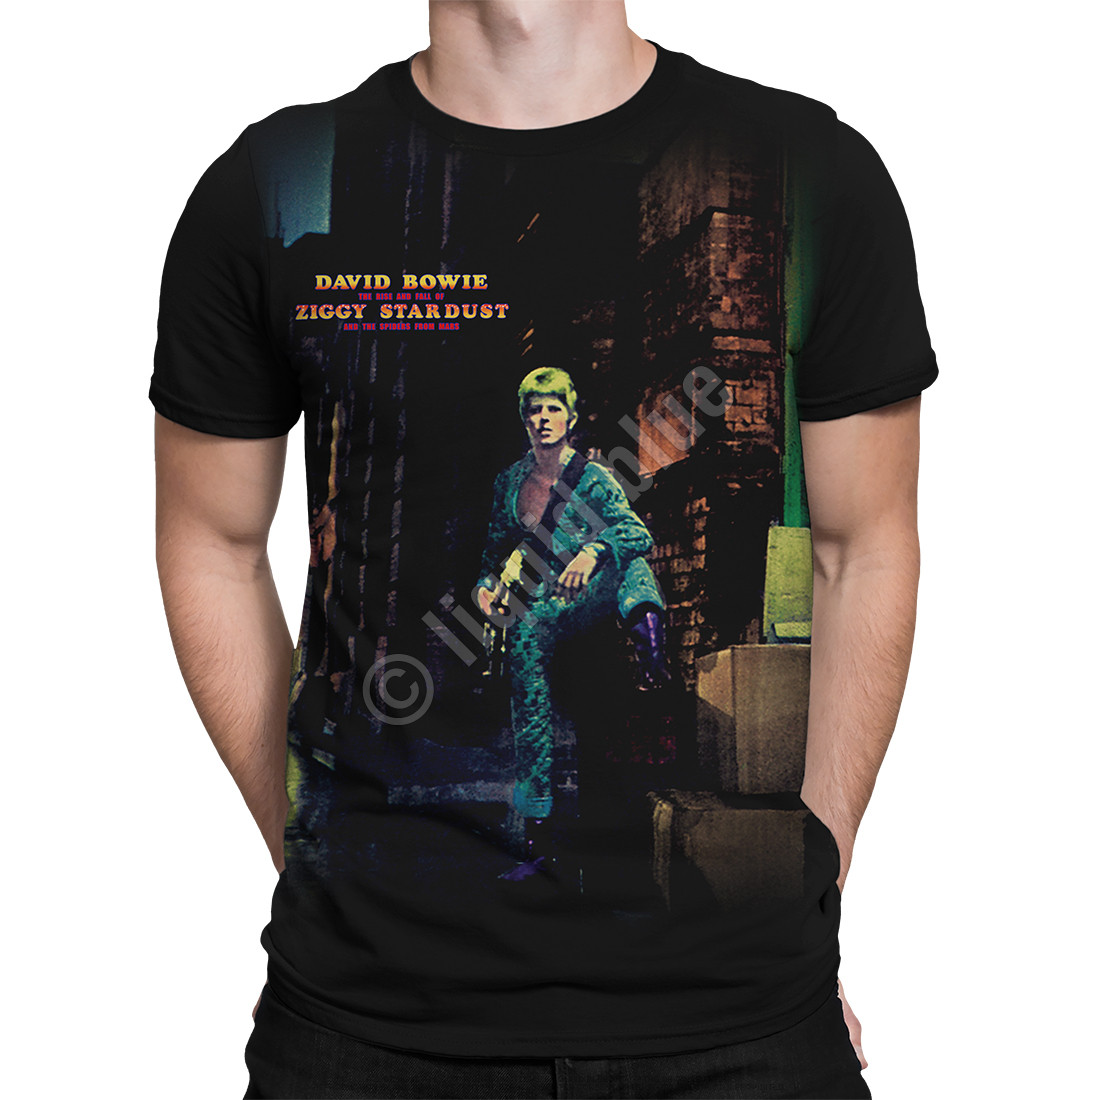 Ziggy Stardust Black Athletic T-Shirt